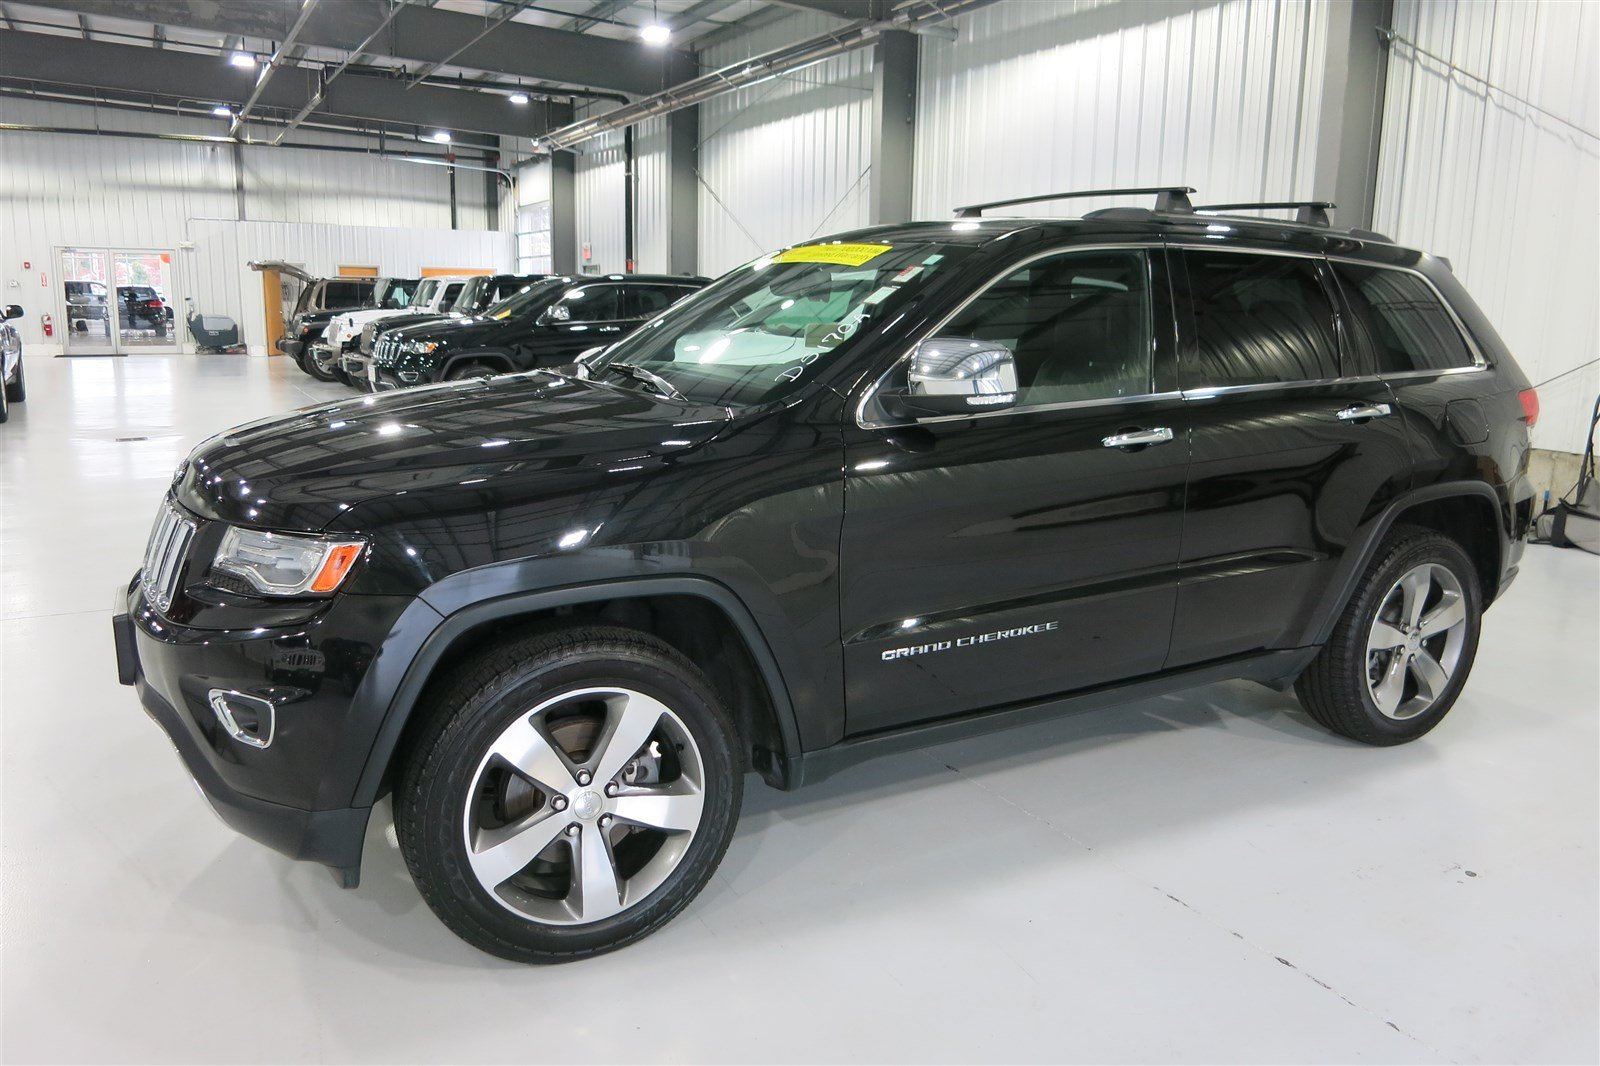 pre owned 2014 jeep grand cherokee limited sport utility in marshfield d5170a quirk chrysler. Black Bedroom Furniture Sets. Home Design Ideas